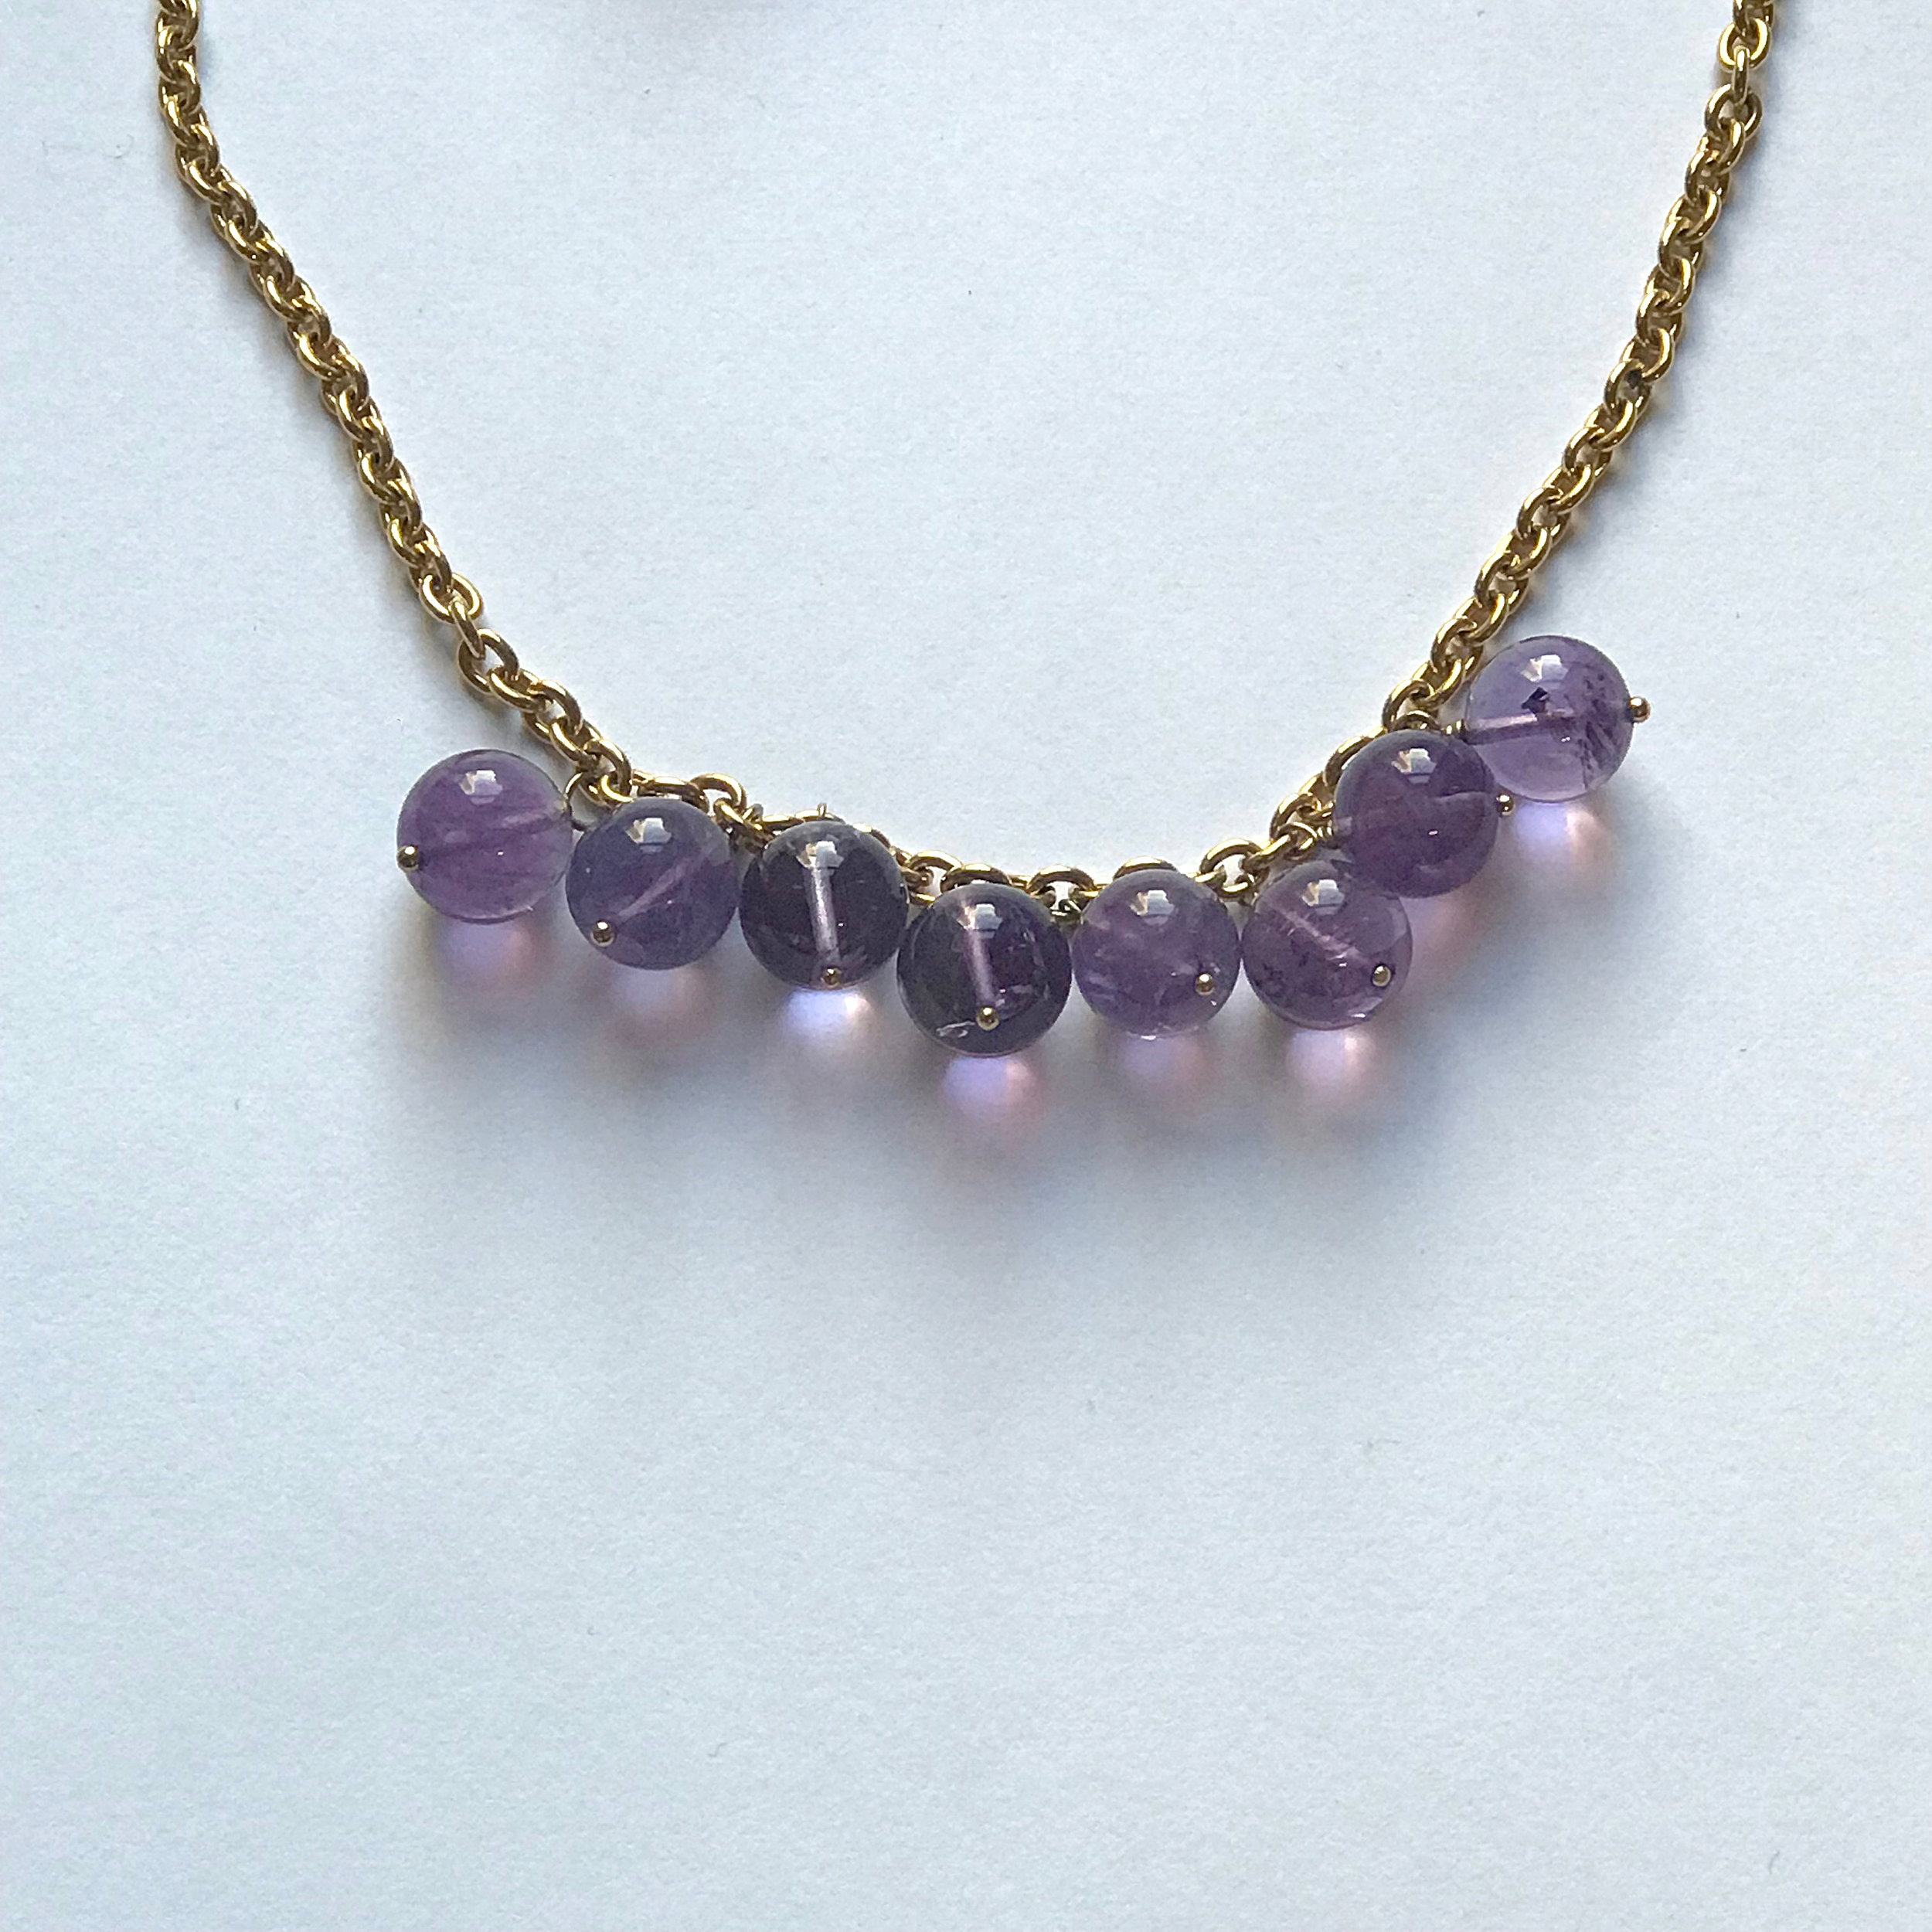 "$250 Vermeil Amethyst Necklace 20"" Chain"